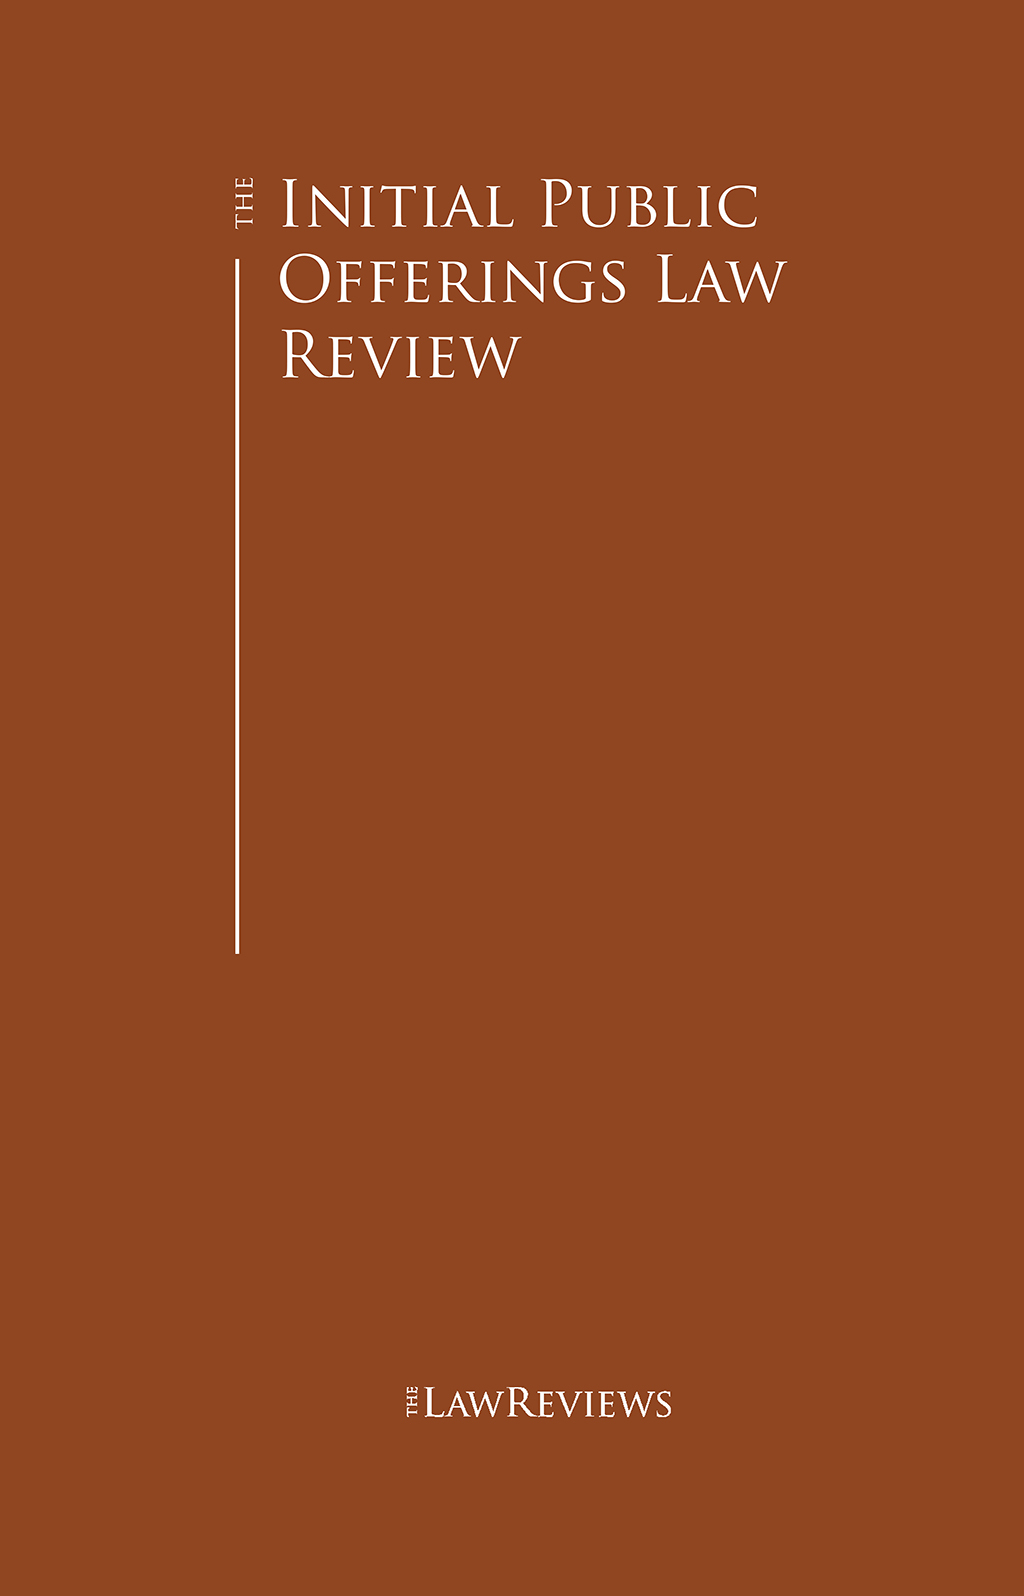 The Initial Public Offerings Law Review